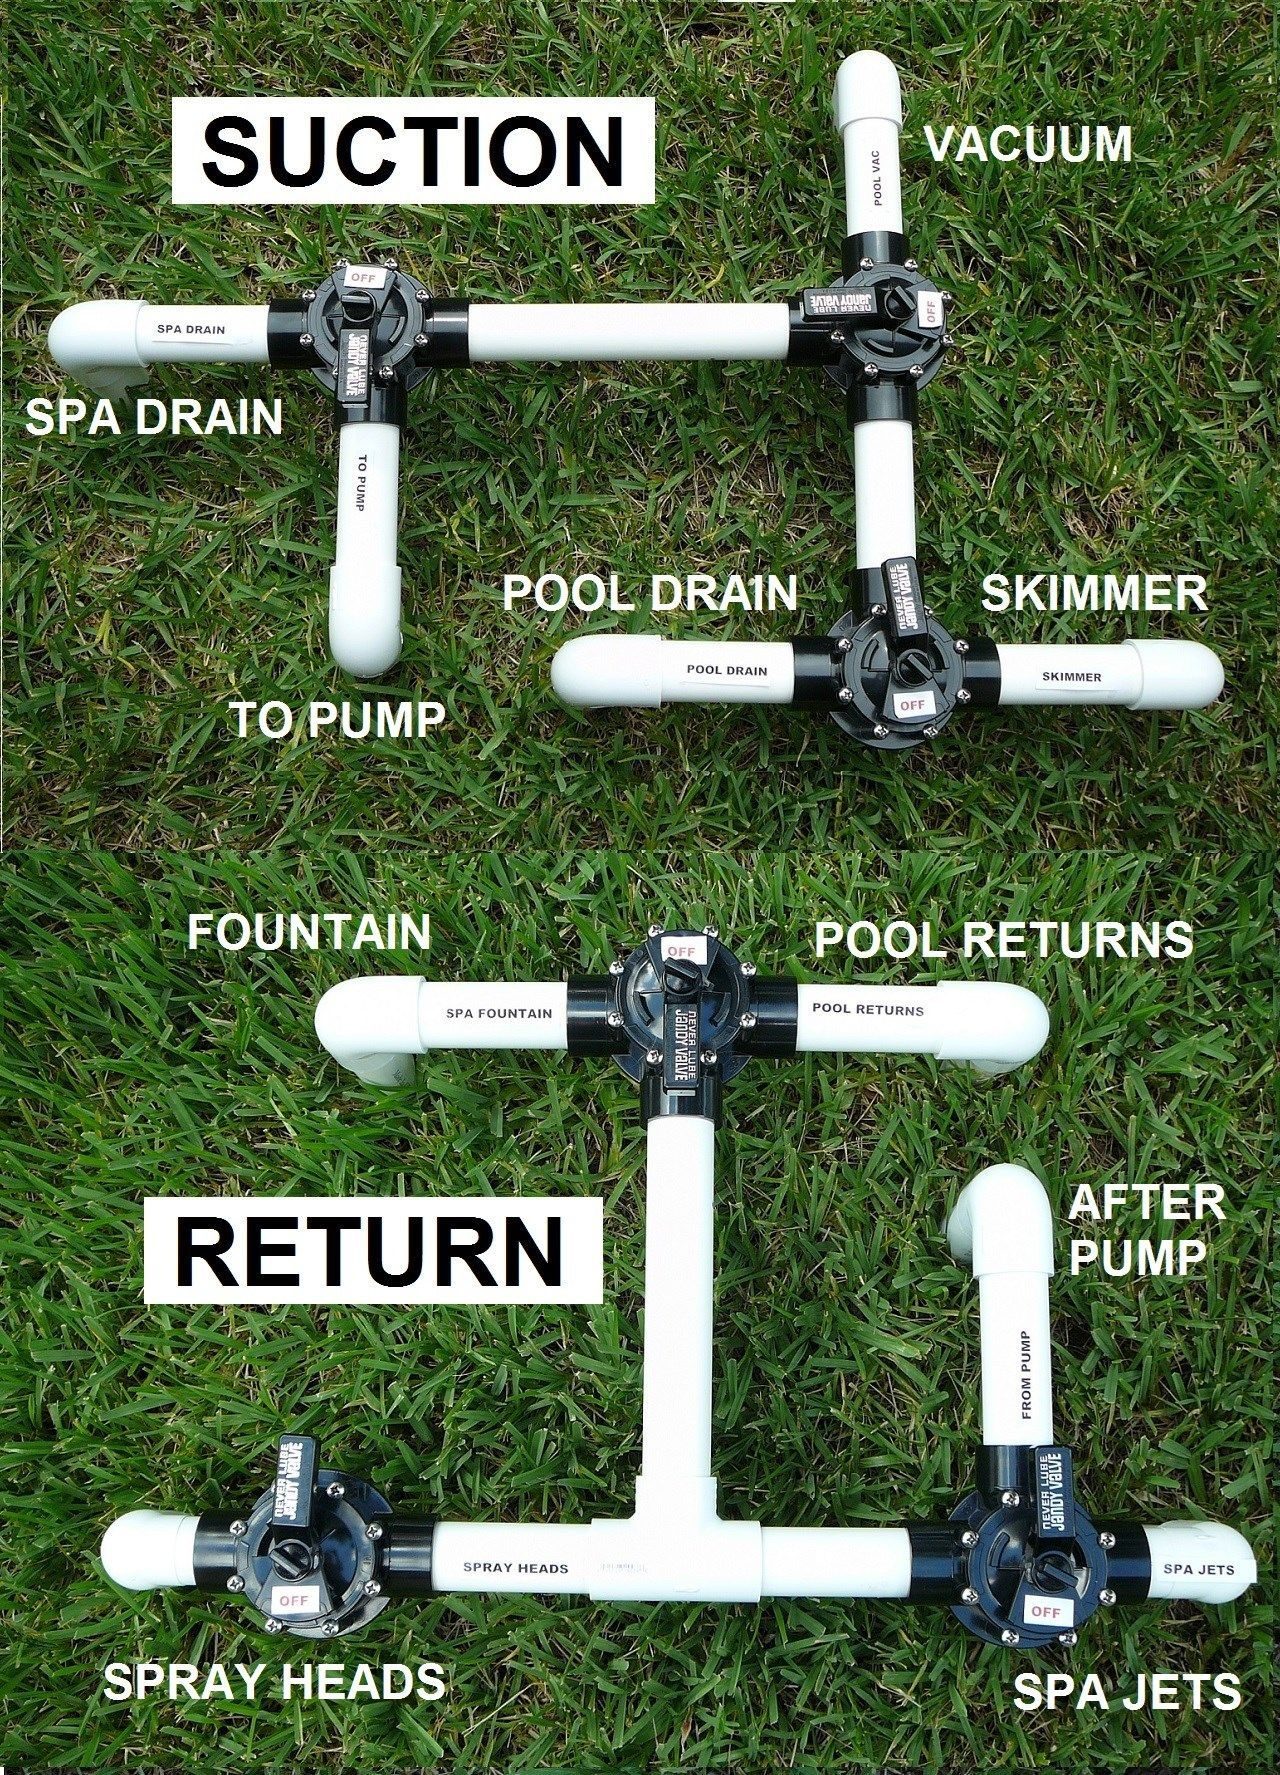 plumbing diagram for pool spa jets in pool pump system plumbing diagrams for after pump pool pump system plumbing diagrams jettub [ 1280 x 1775 Pixel ]